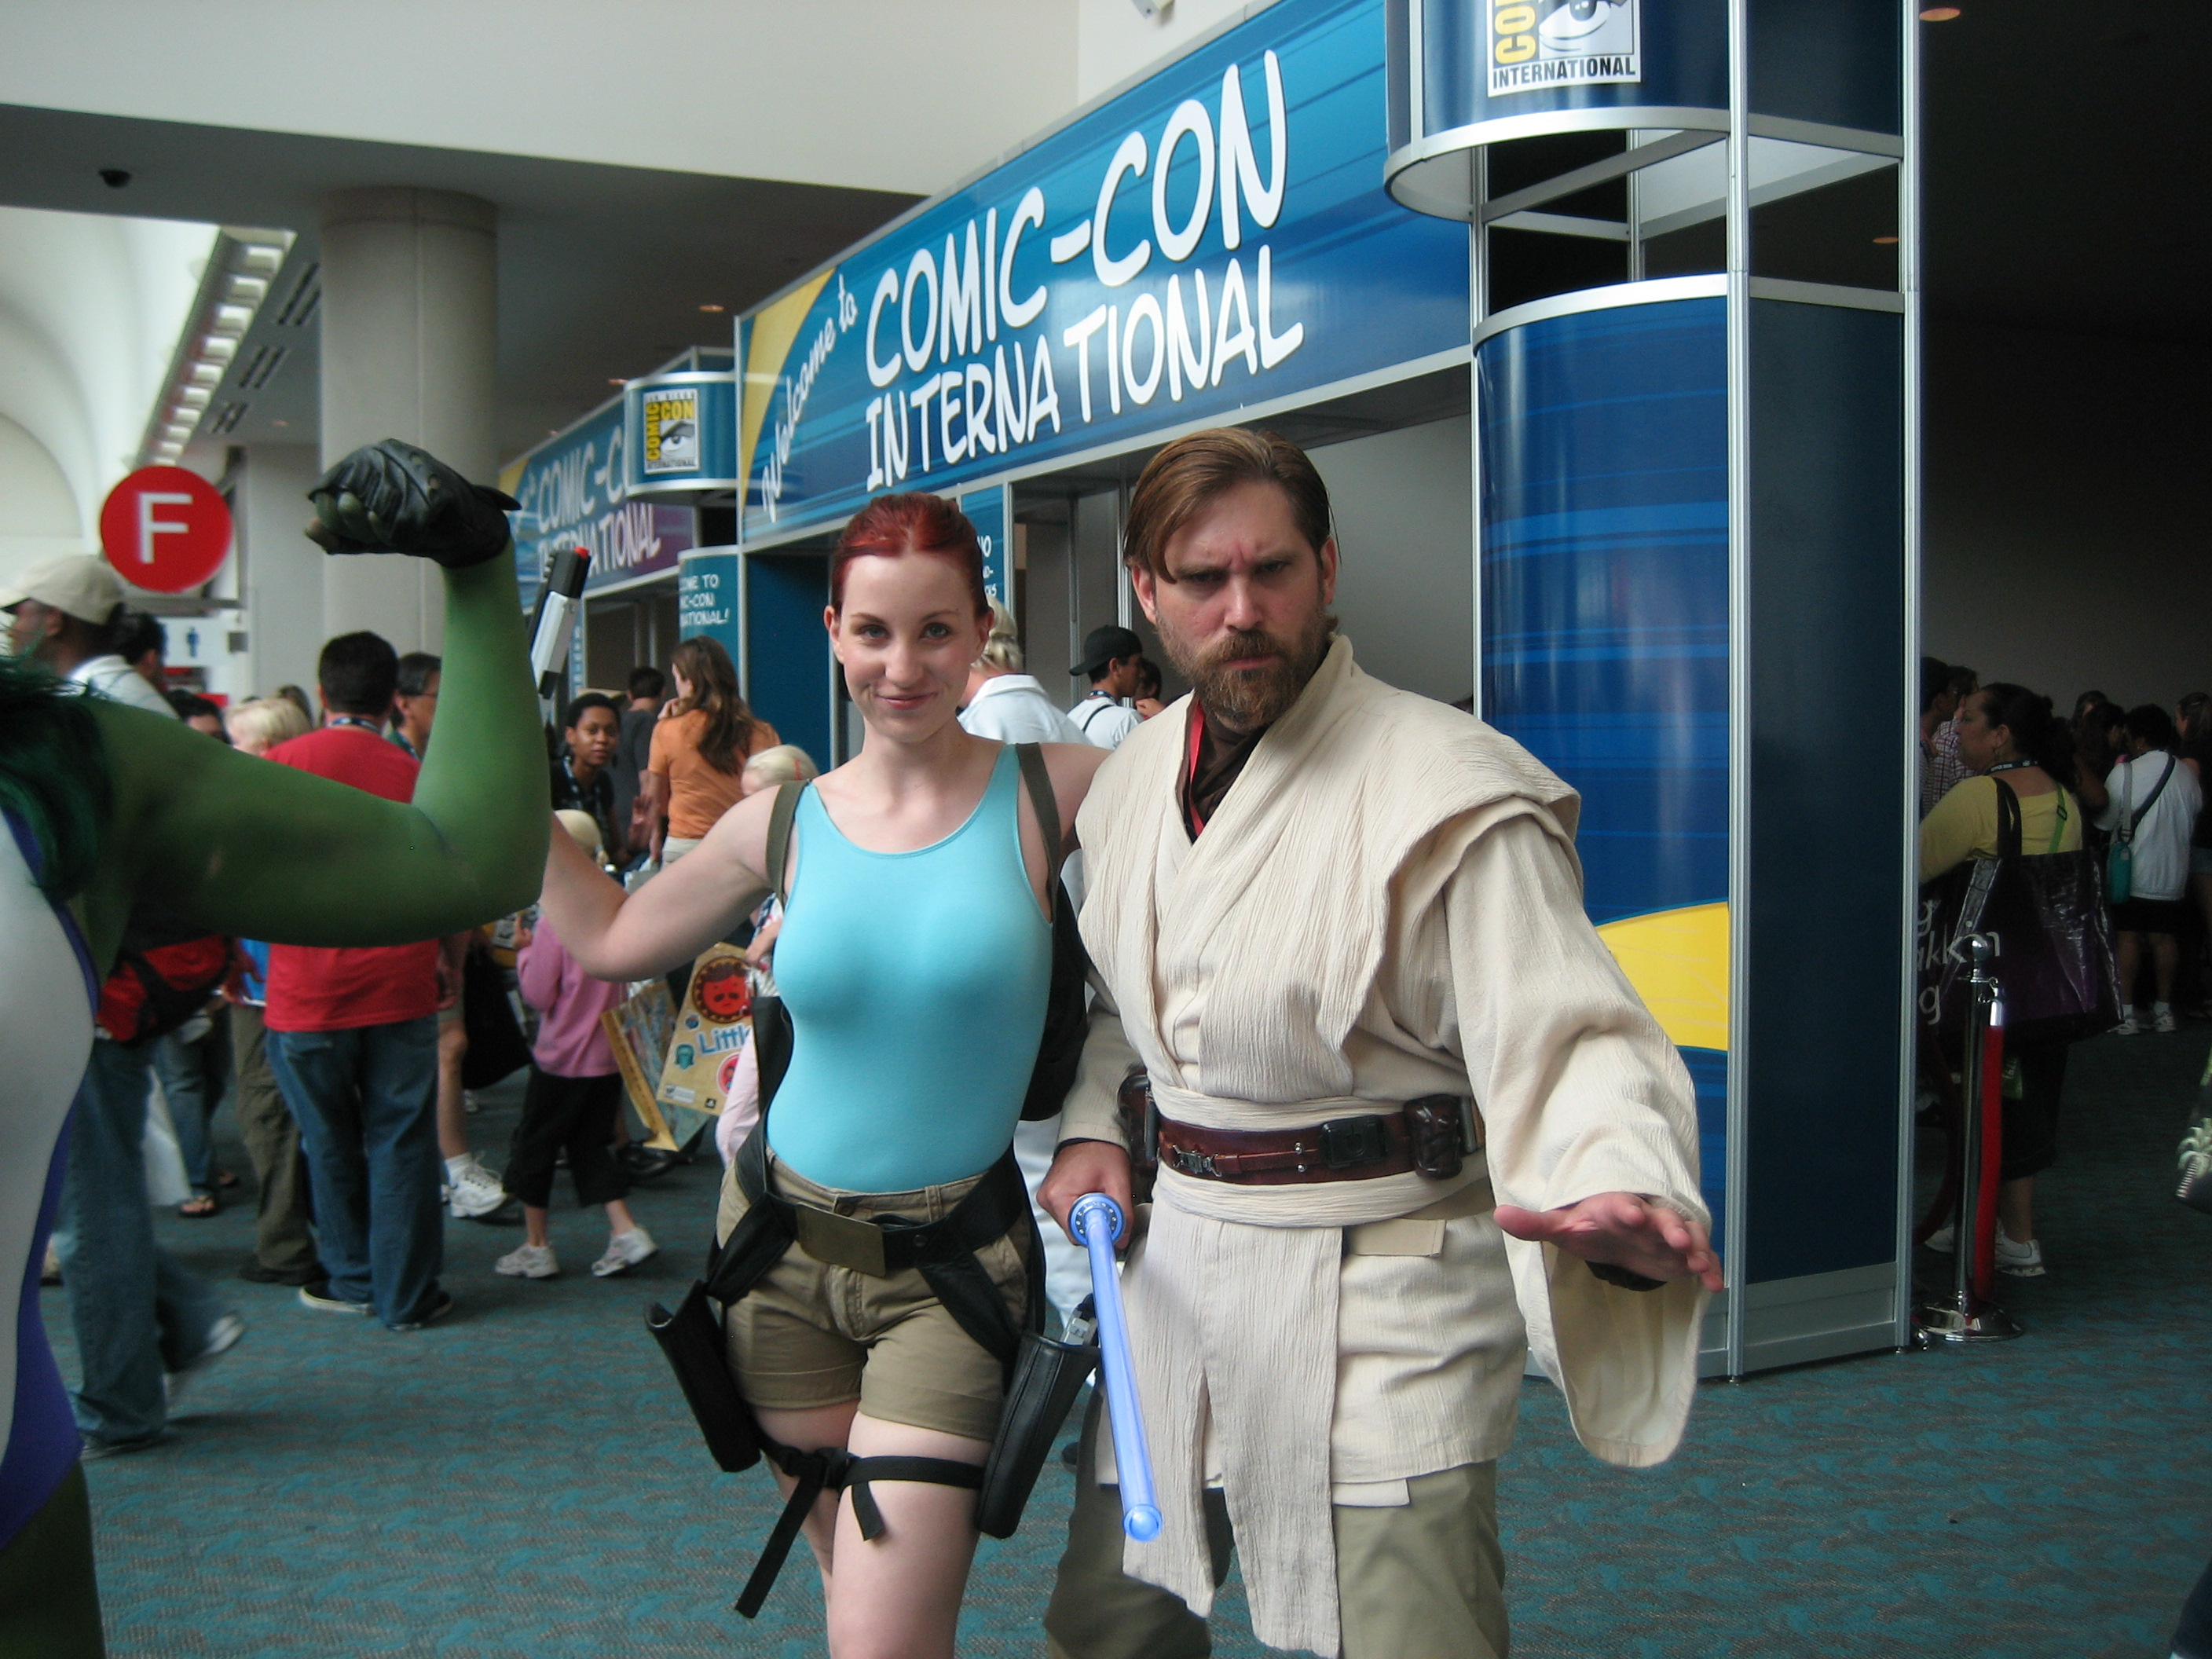 Obi Wan Kenobi and Lara Croft